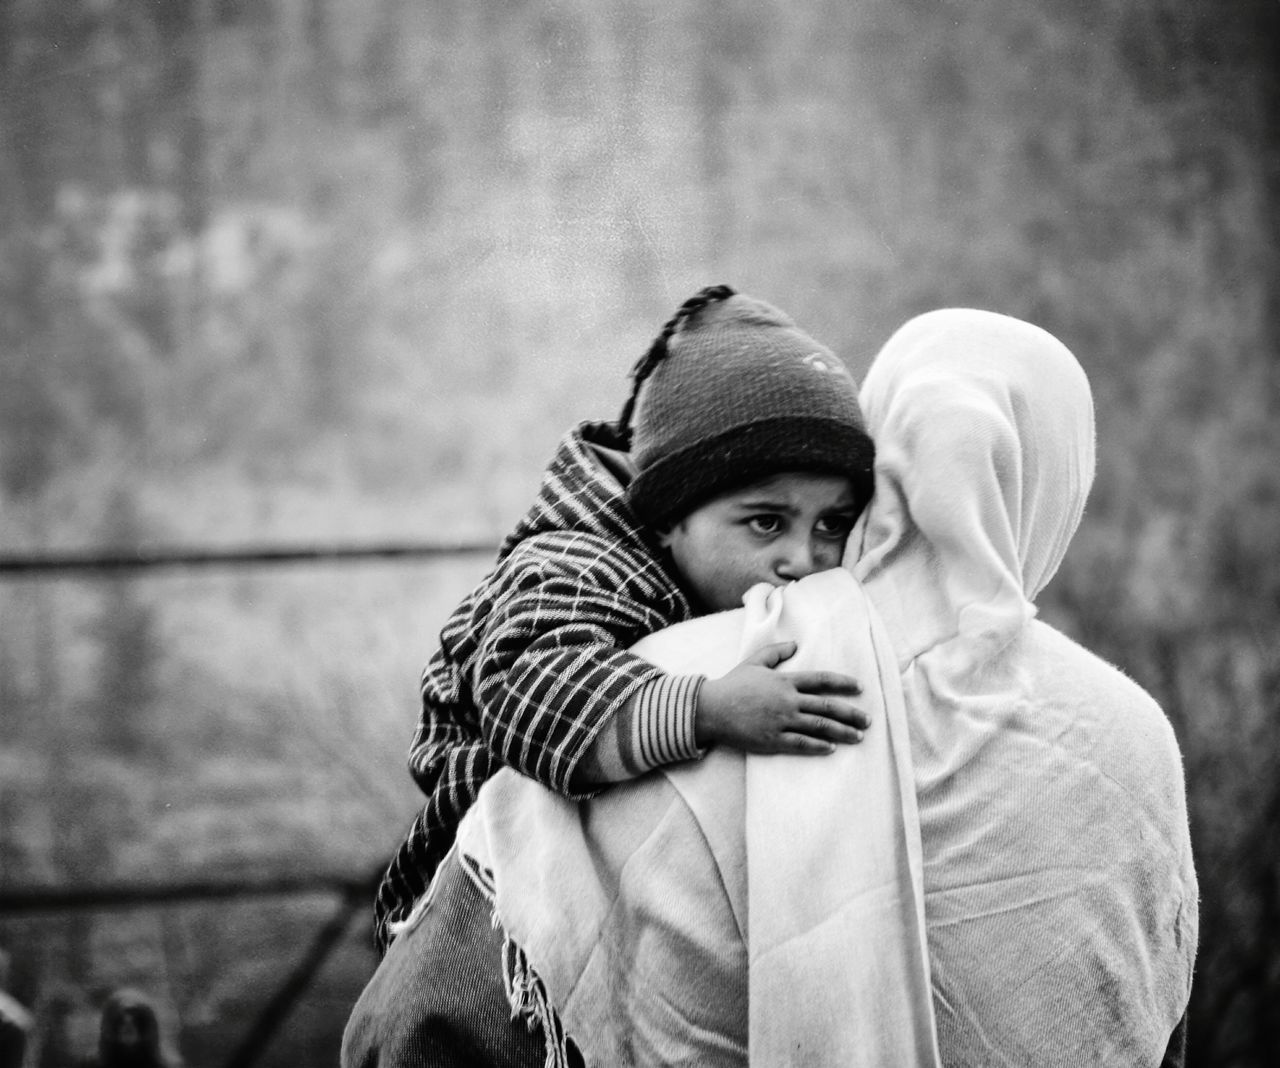 Motherly Love People Natgeo Revoshotsphotography Revo Nikon IAmRevo Potraits IExplore IExploreKashmir IPhotographKashmir Streetphotography Dailylife Children